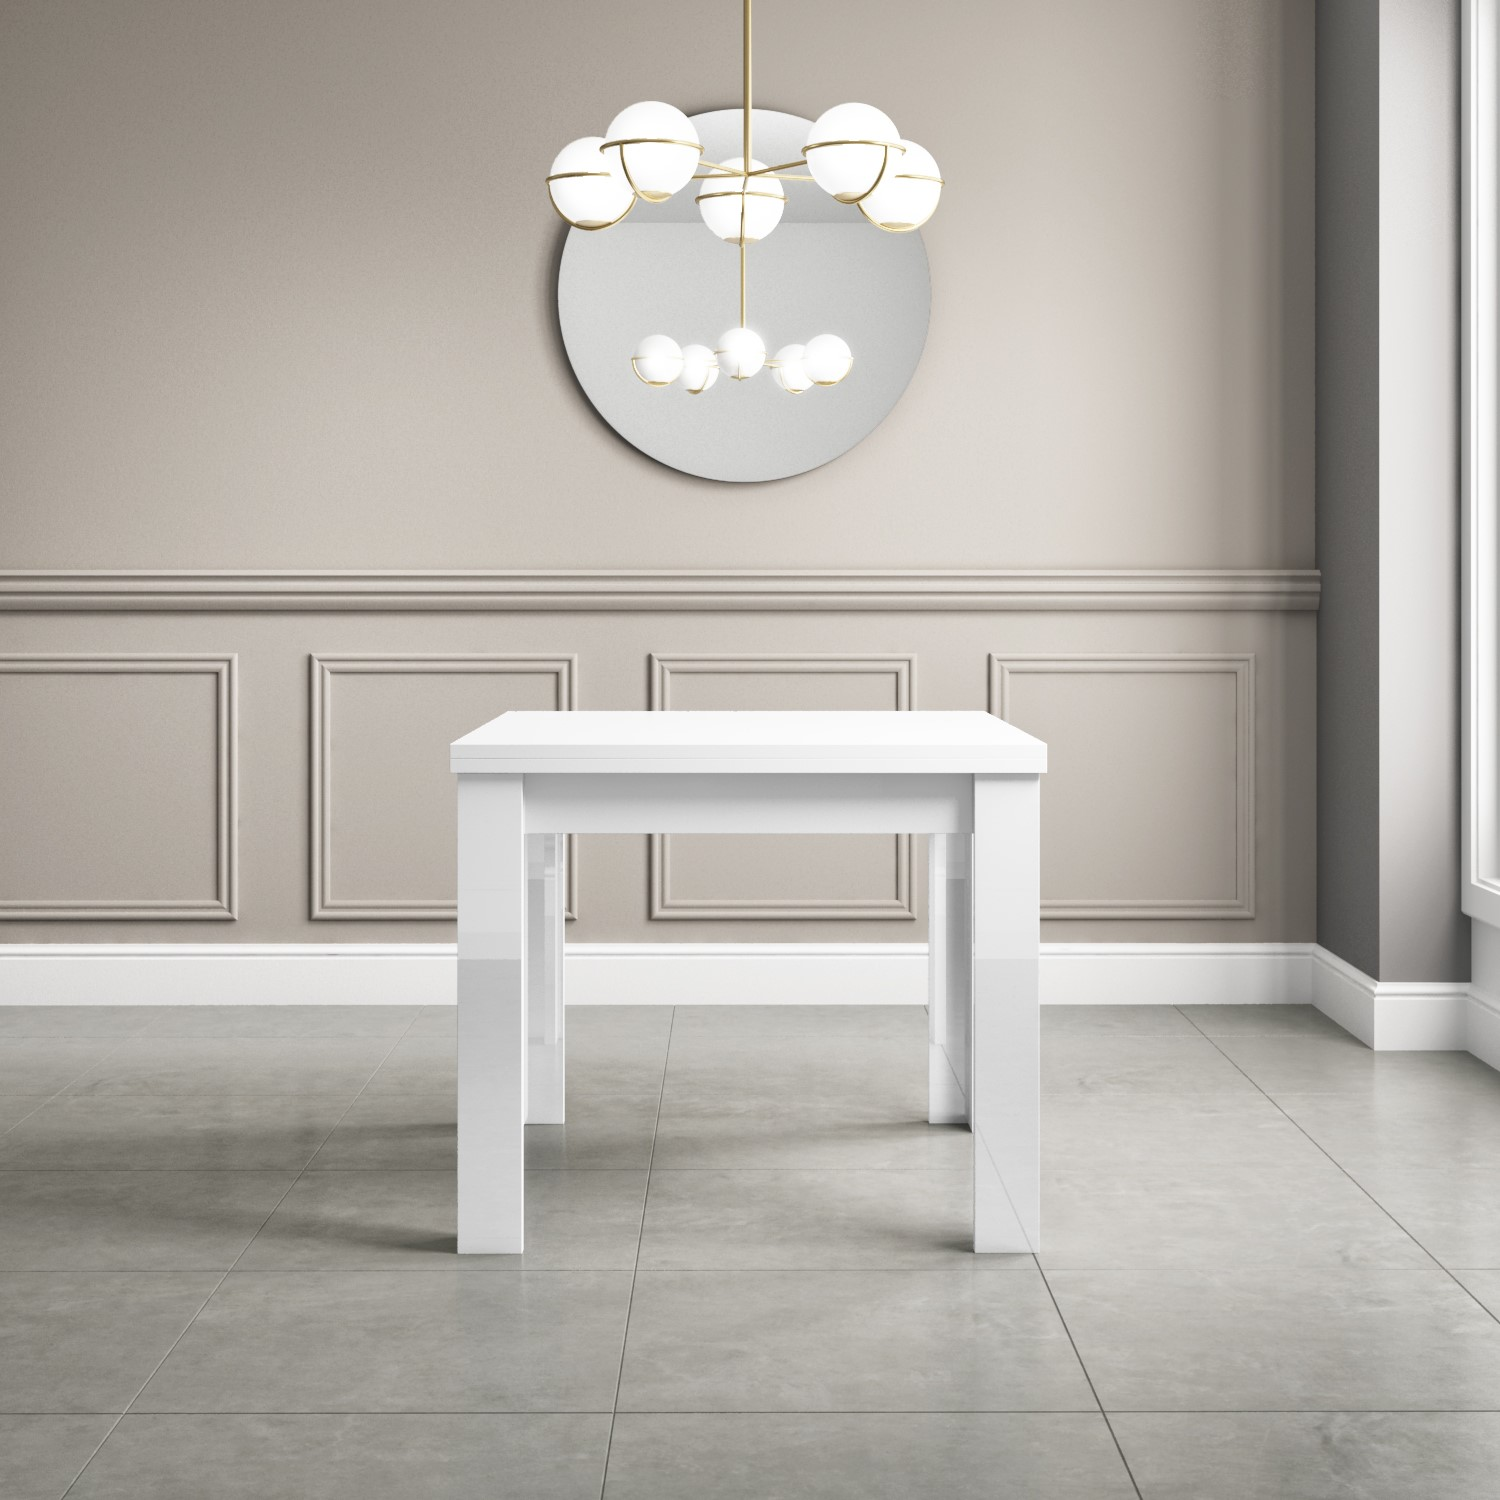 Pleasant White High Gloss Dining Table 4 Seater Flip Top Vivienne Ncnpc Chair Design For Home Ncnpcorg